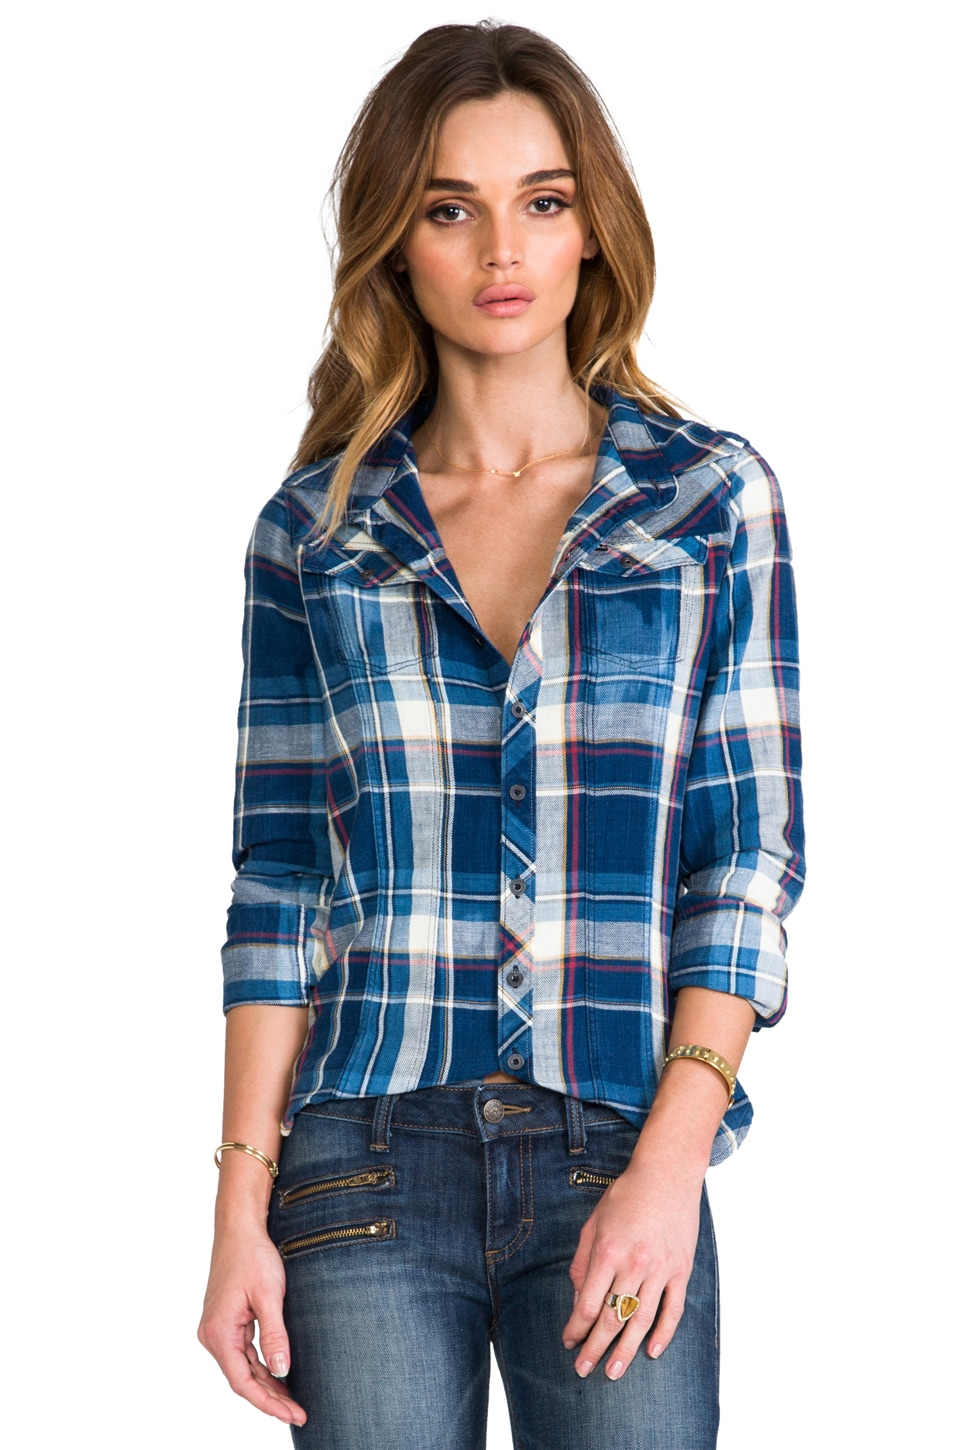 G-Star Tailor Check Plaid Shirt in Medium Aged